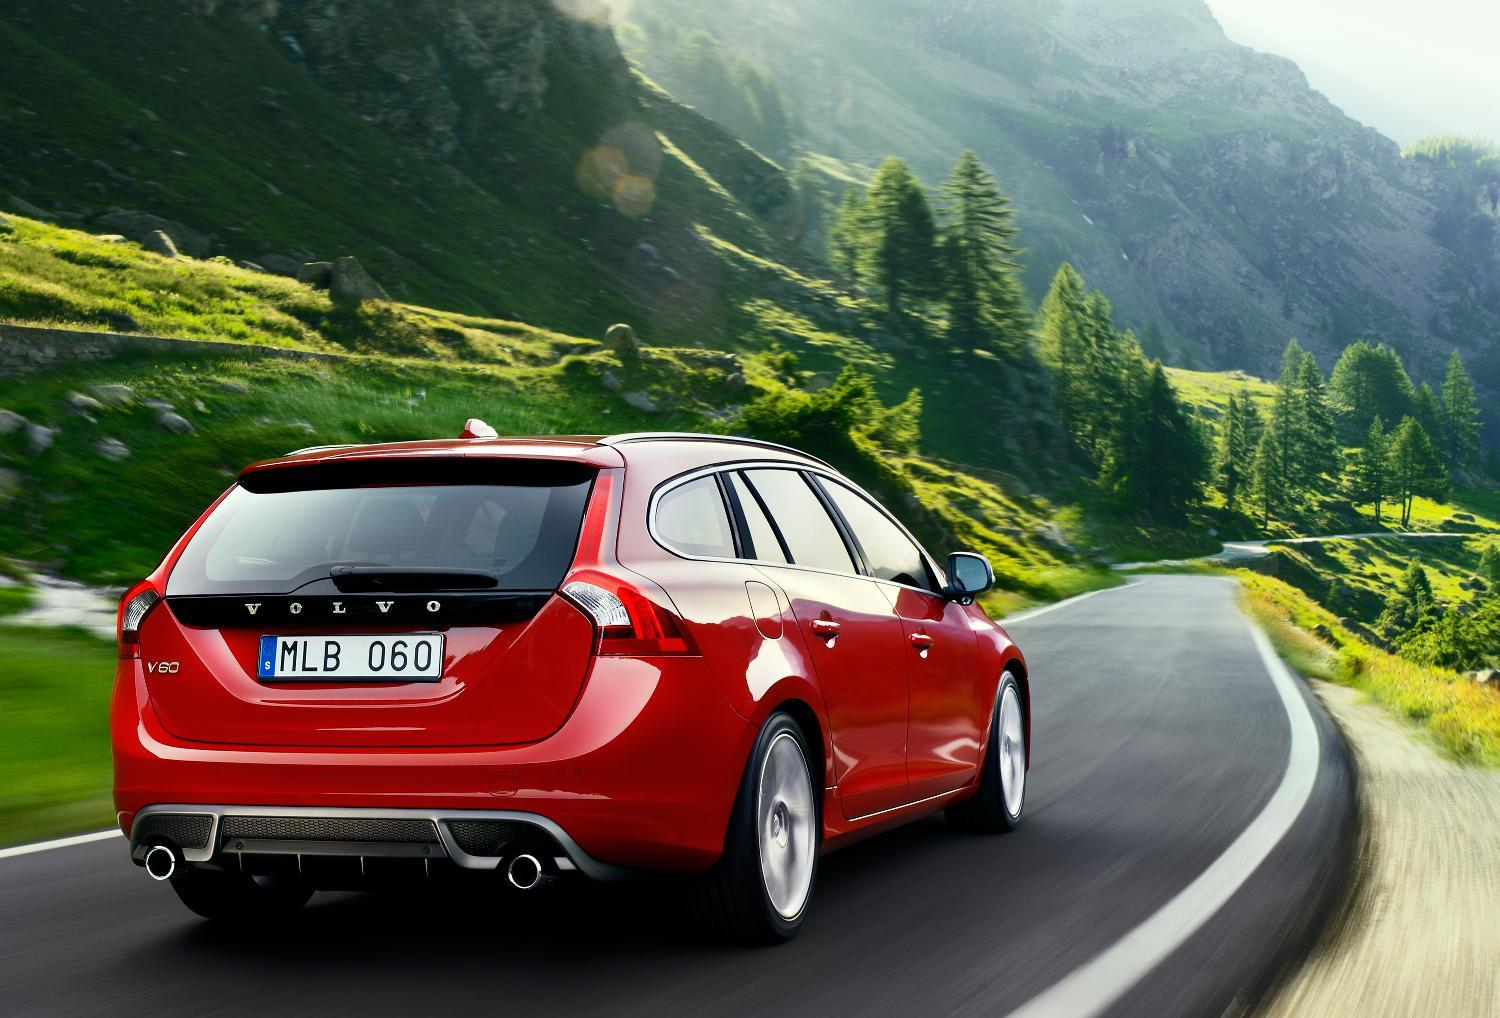 motor mania buzz volvo v60 pricing announced uk. Black Bedroom Furniture Sets. Home Design Ideas